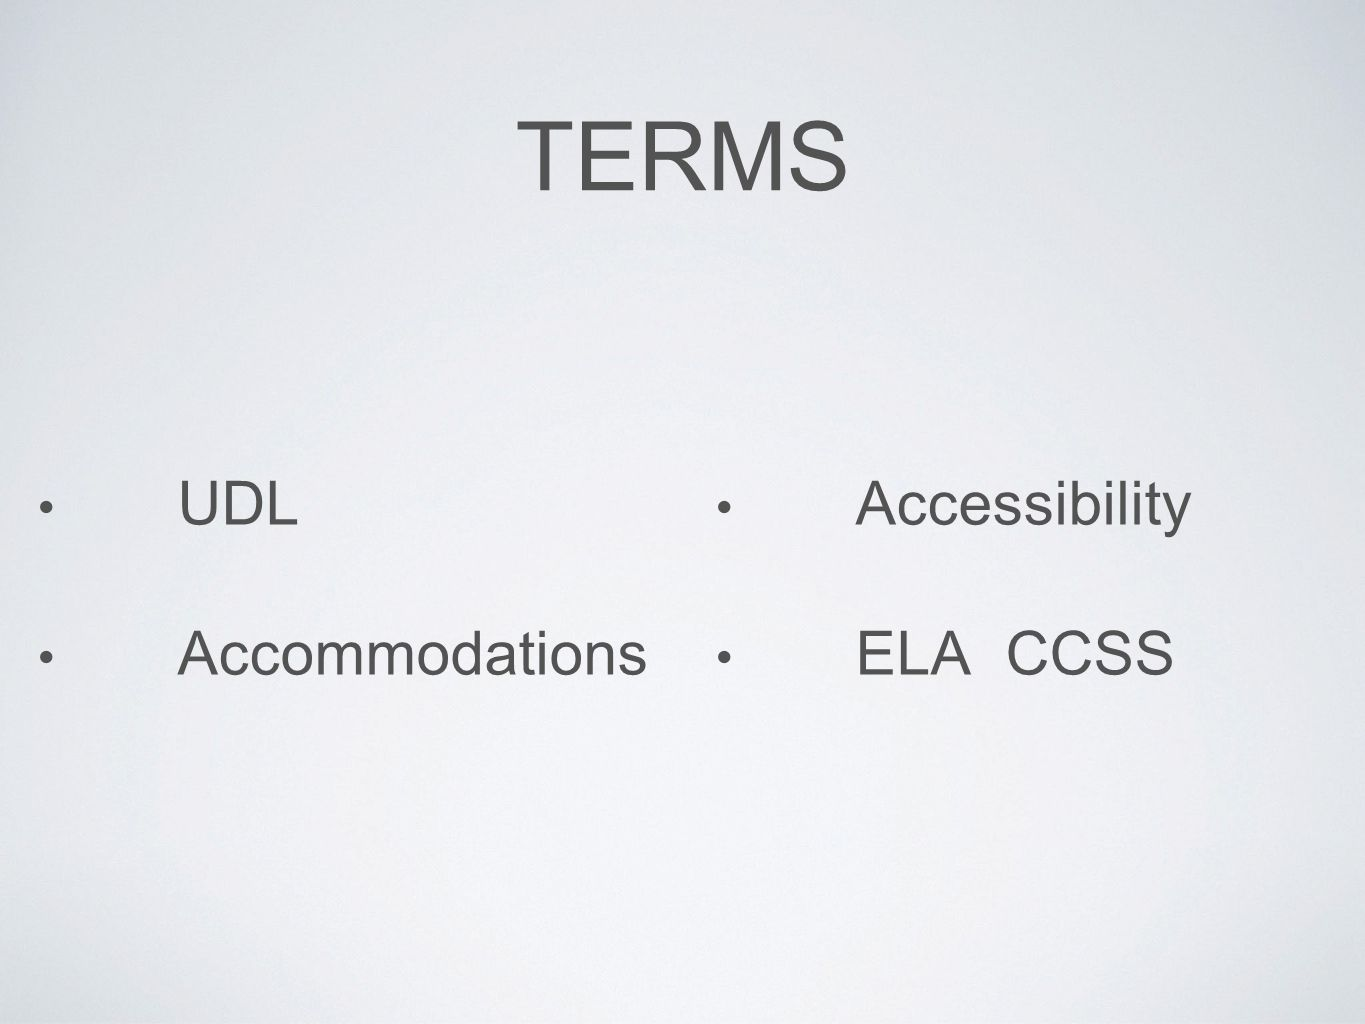 TERMS UDL Accommodations Accessibility ELA CCSS